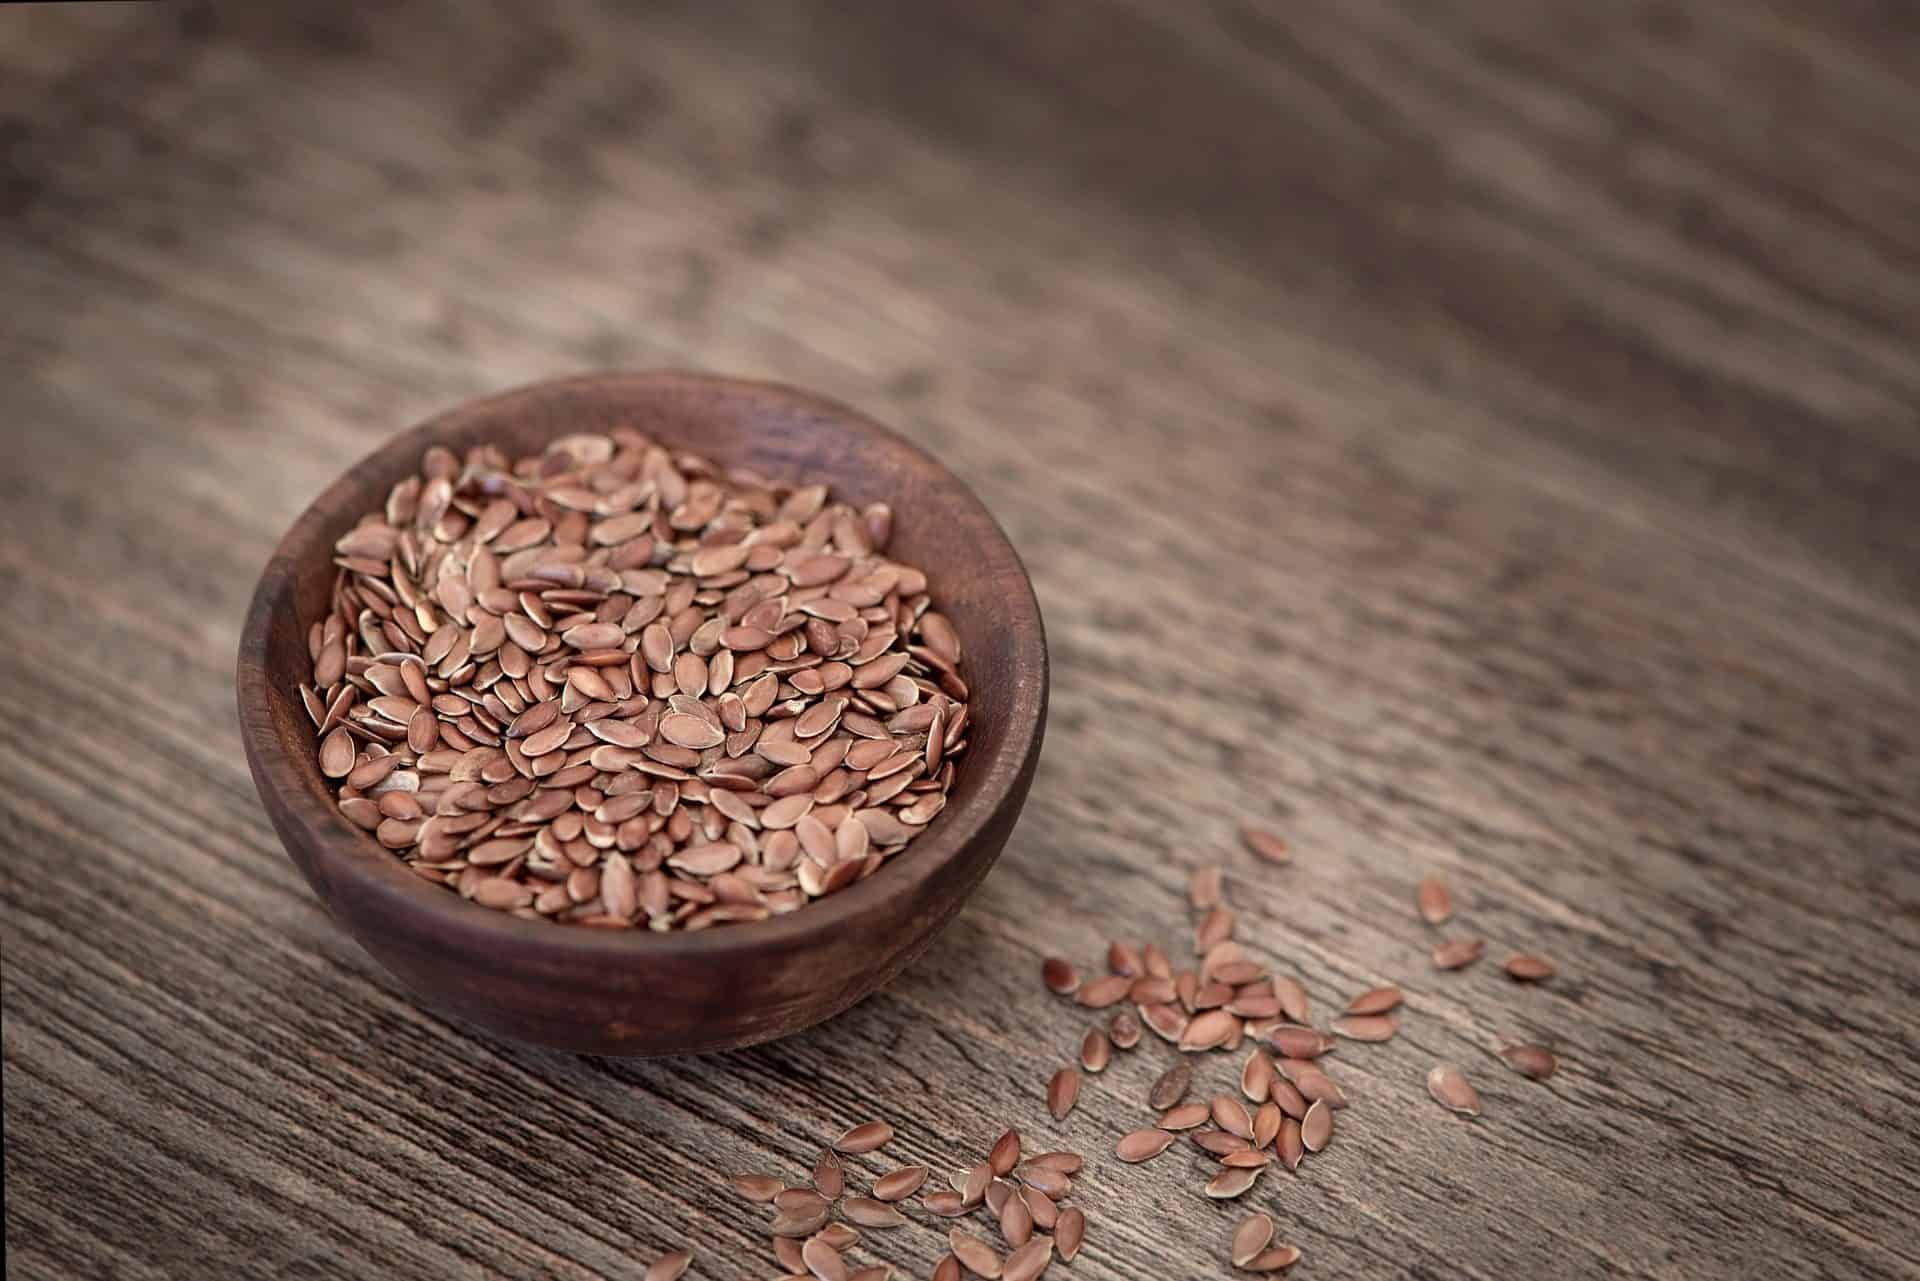 Flax seeds helps with suppressing your appetite